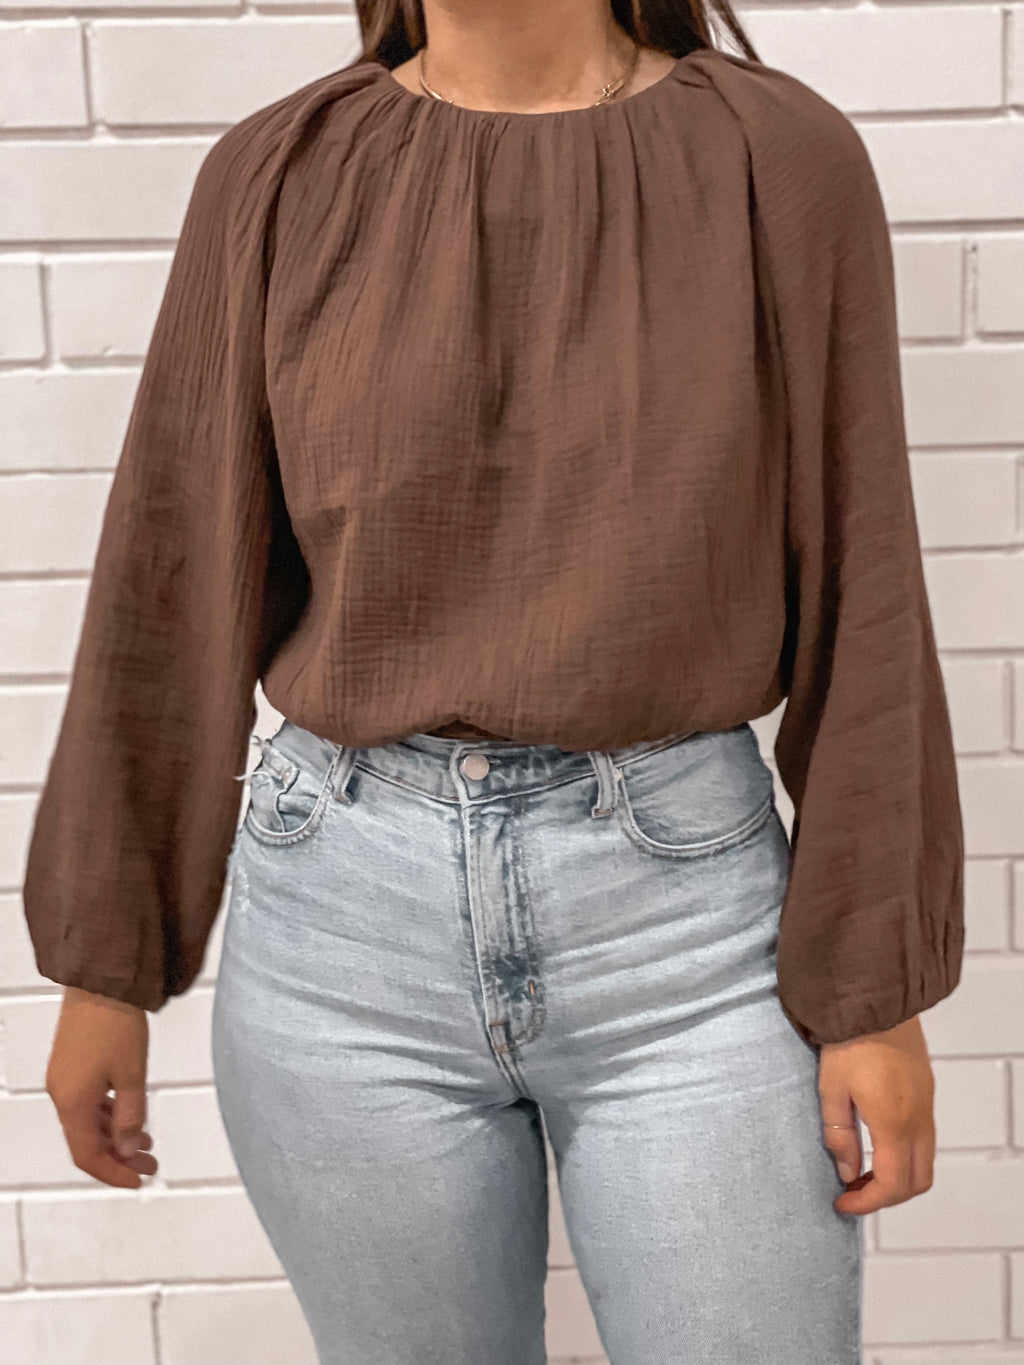 Chloe Top - Chocolate